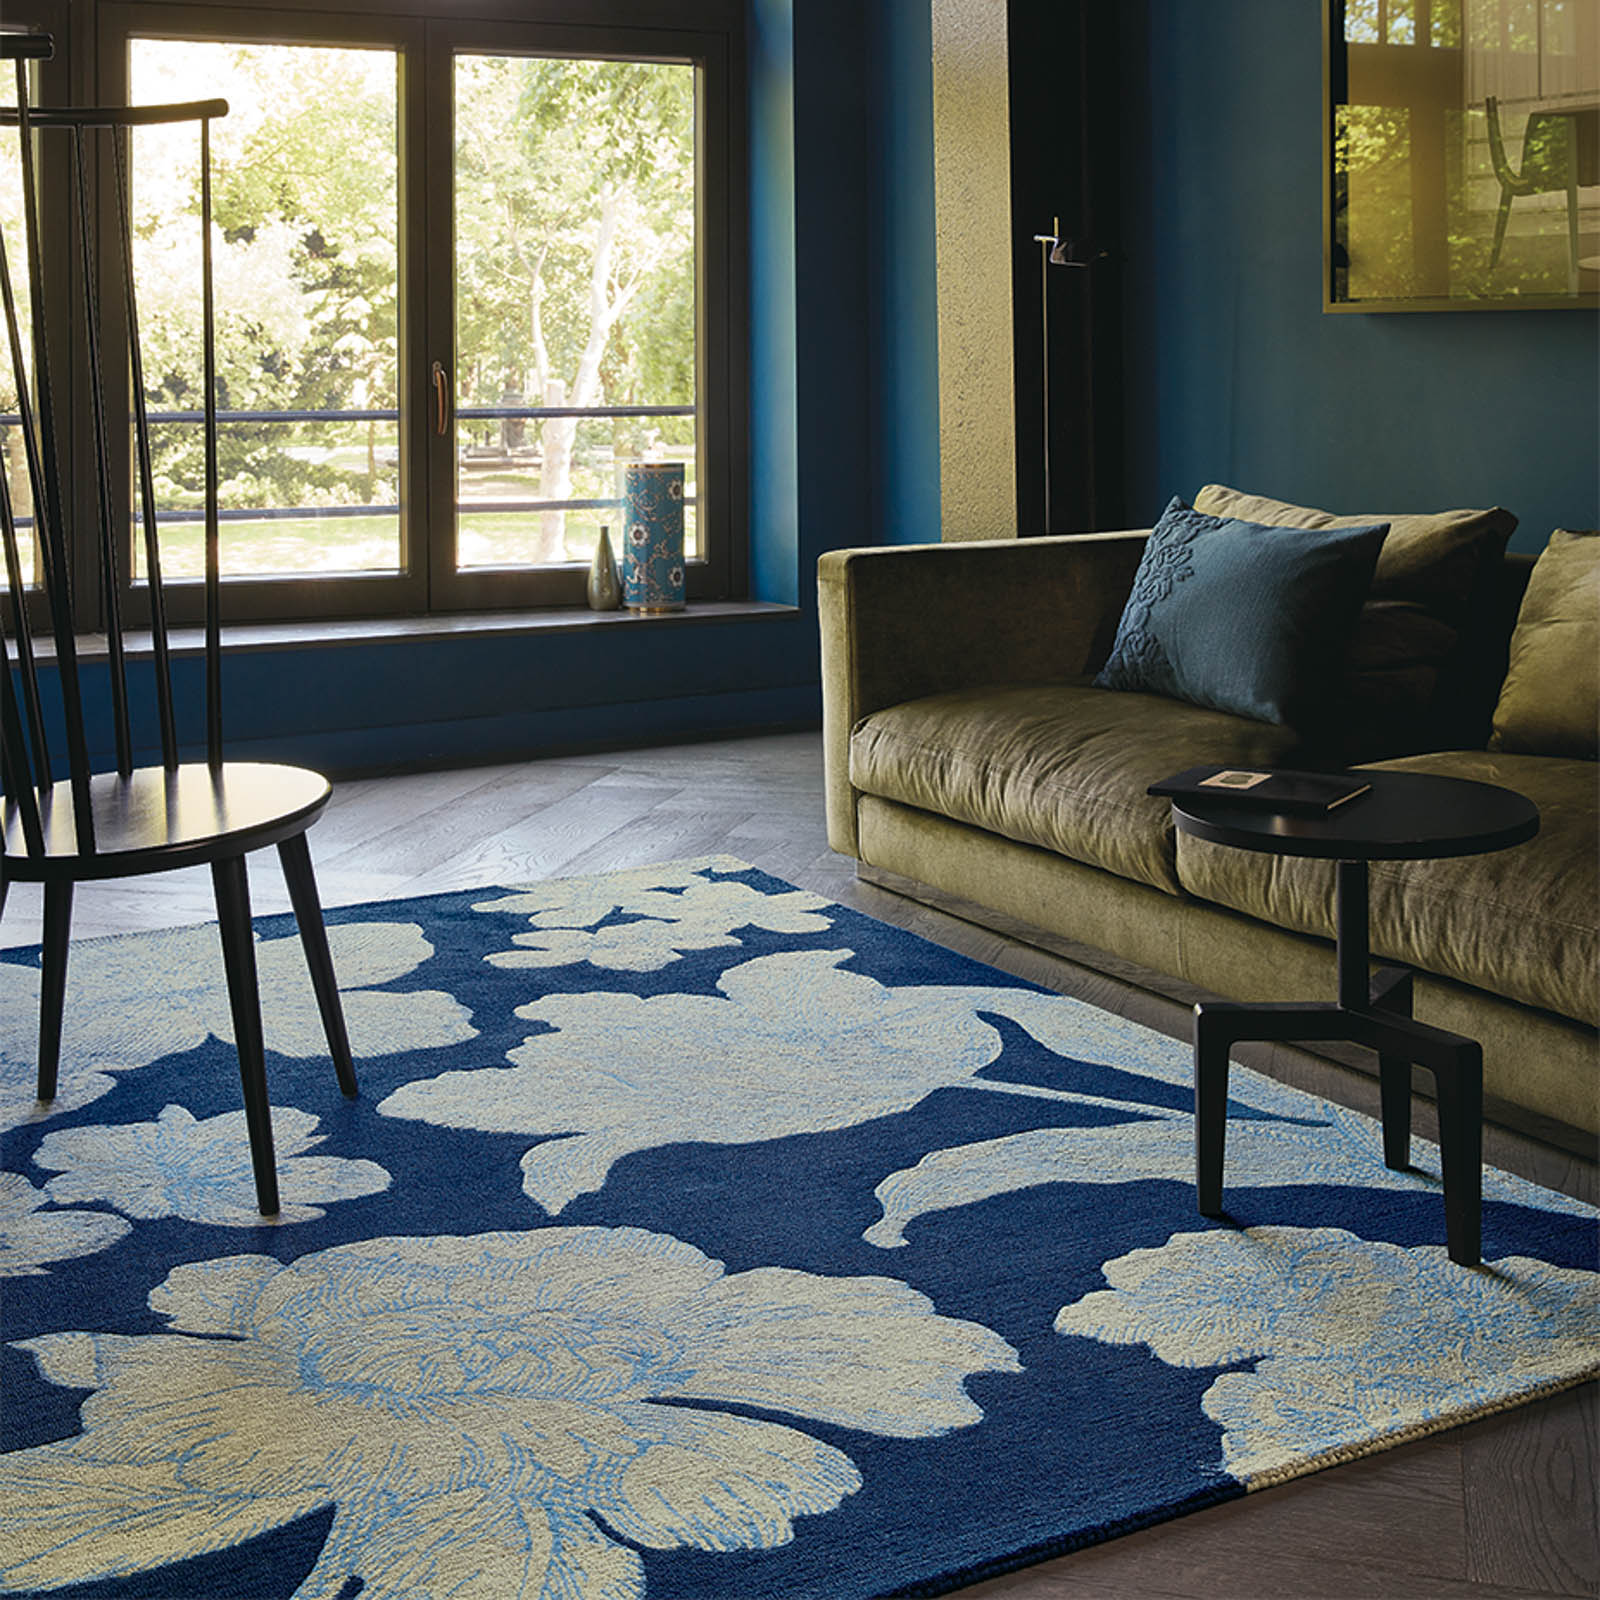 Mother's Day gift, Vibrance Rugs 37408 by Wedgwood